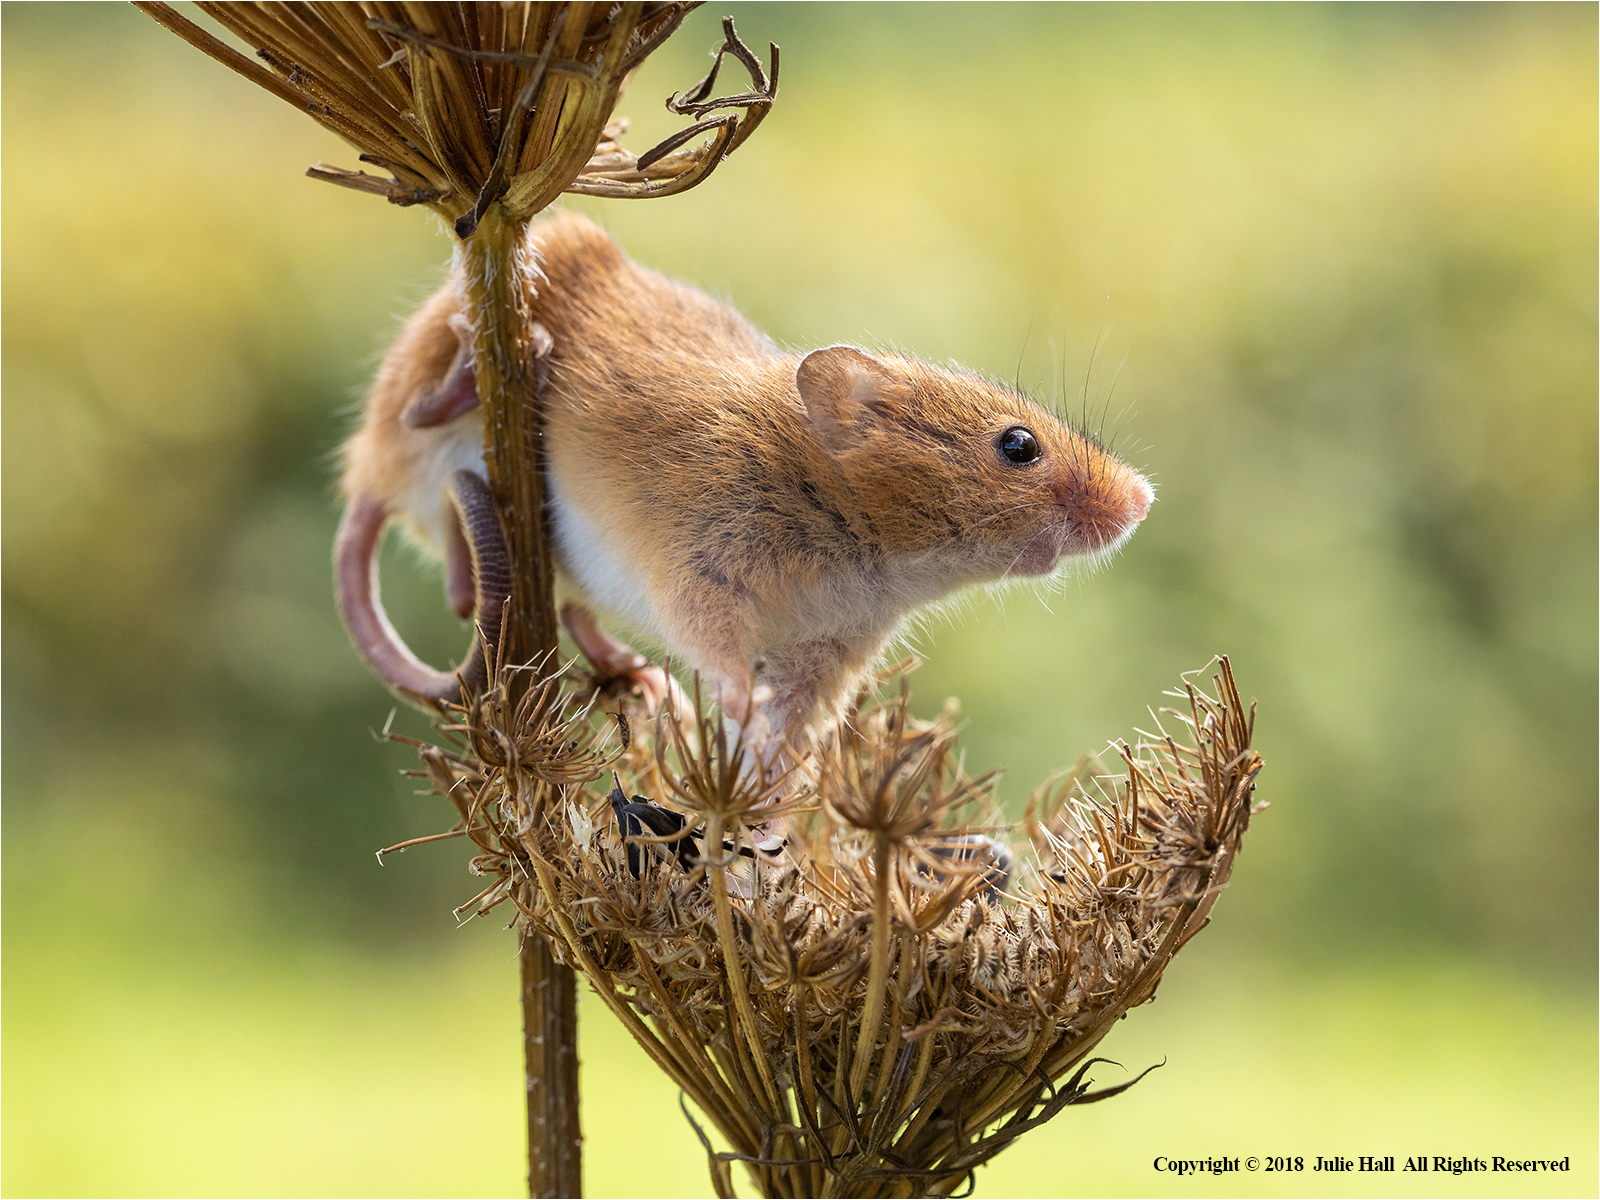 Harvest Mouse by Julie Hall